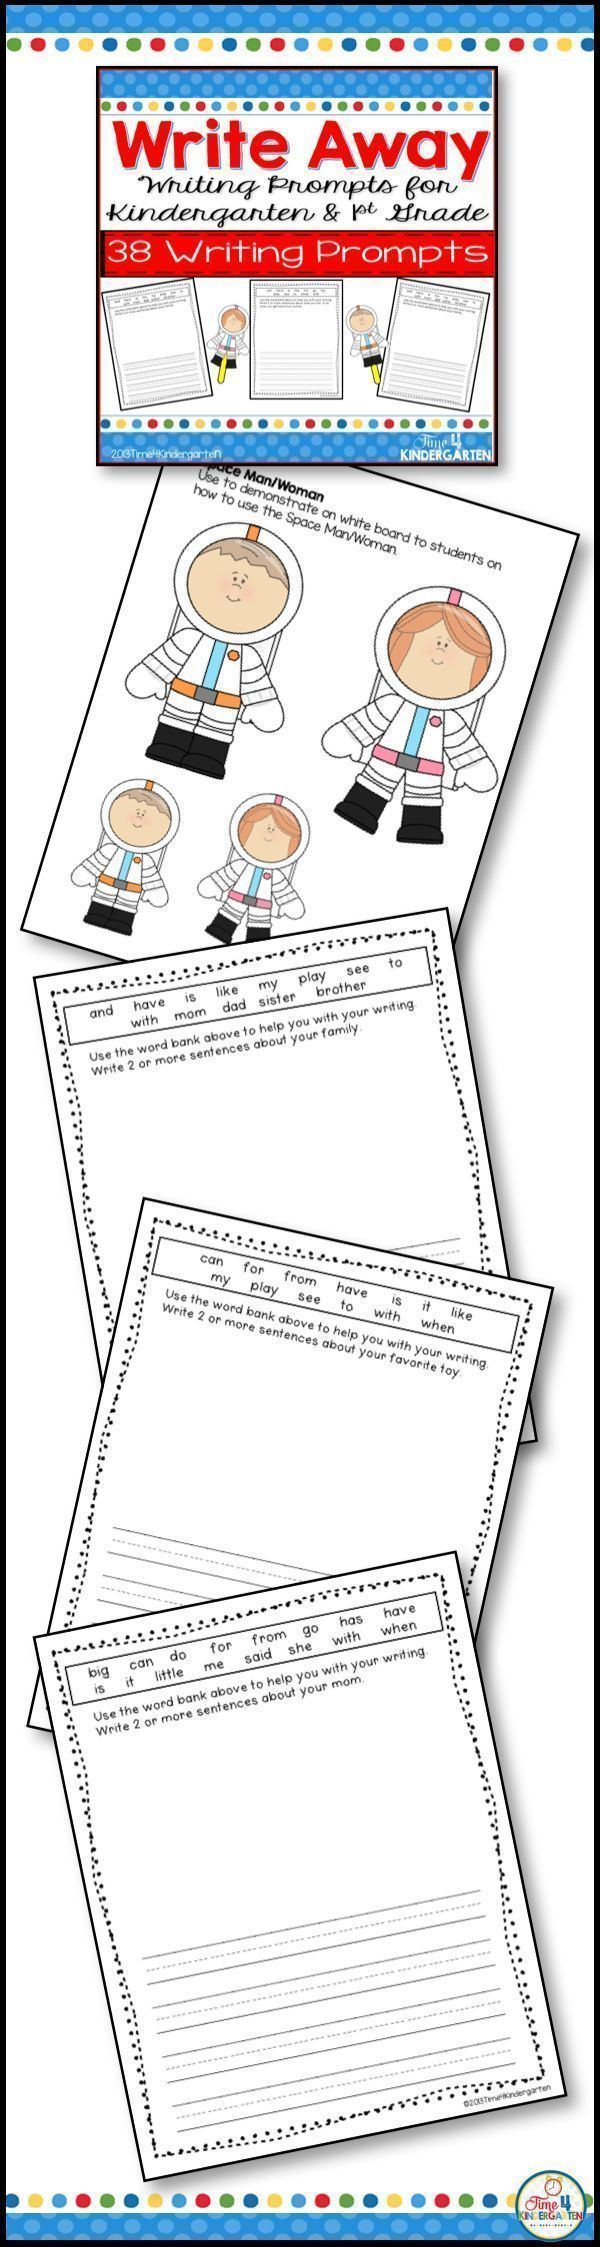 Writing prompts for kindergarten and first grade. Your students will love writing when they can use these simple writing page that include a friendly word bank with sight words to eehlp them with their writing.